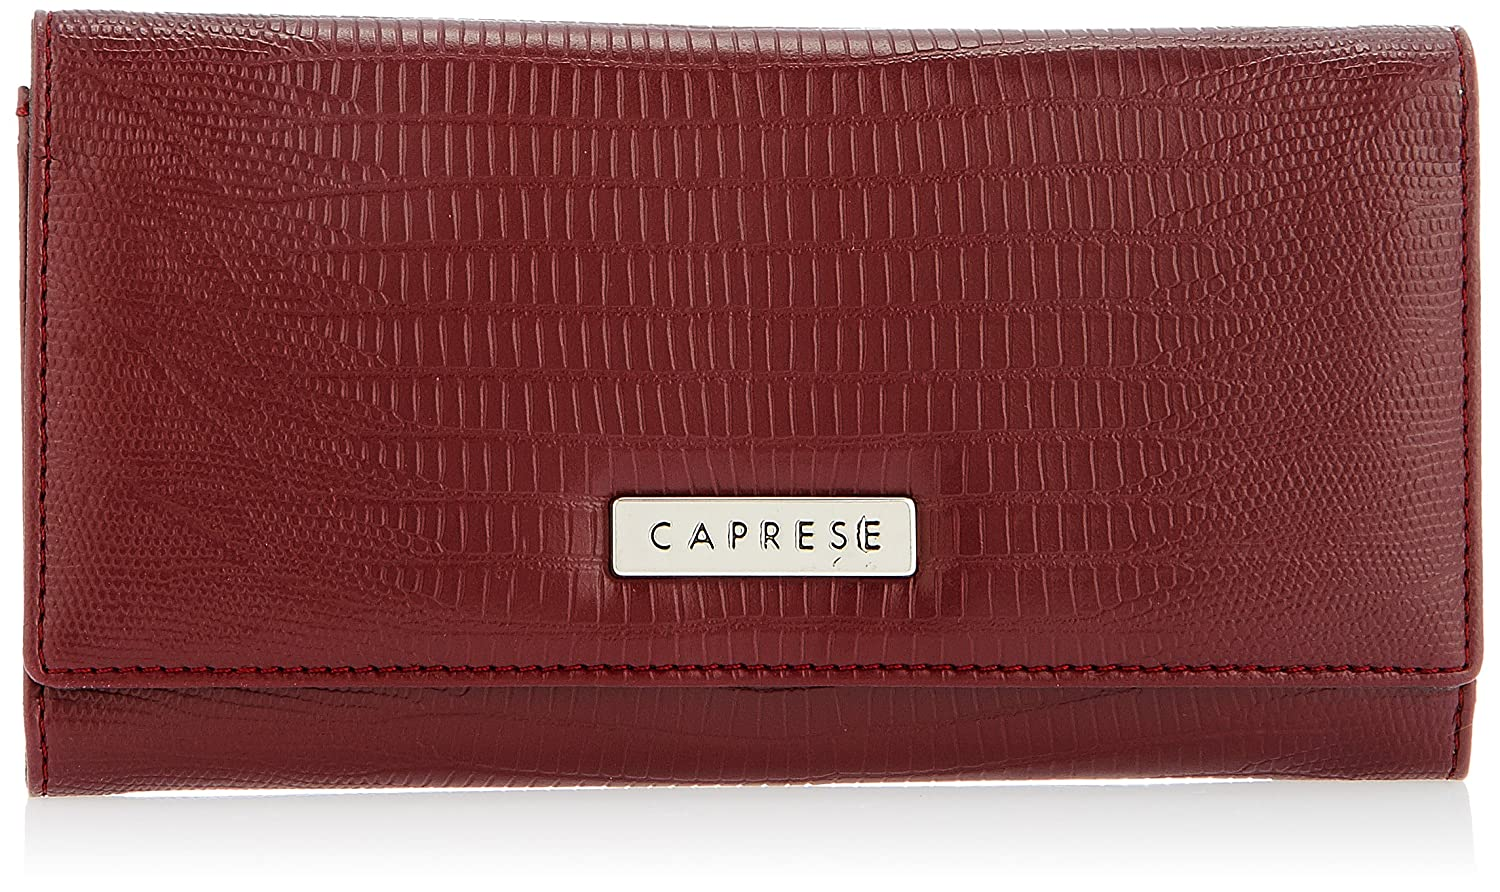 Get Caprese Libra Medium Wallet (Maroon) For Rs. 649 at 35% Off | Deal of the Day at Amazon